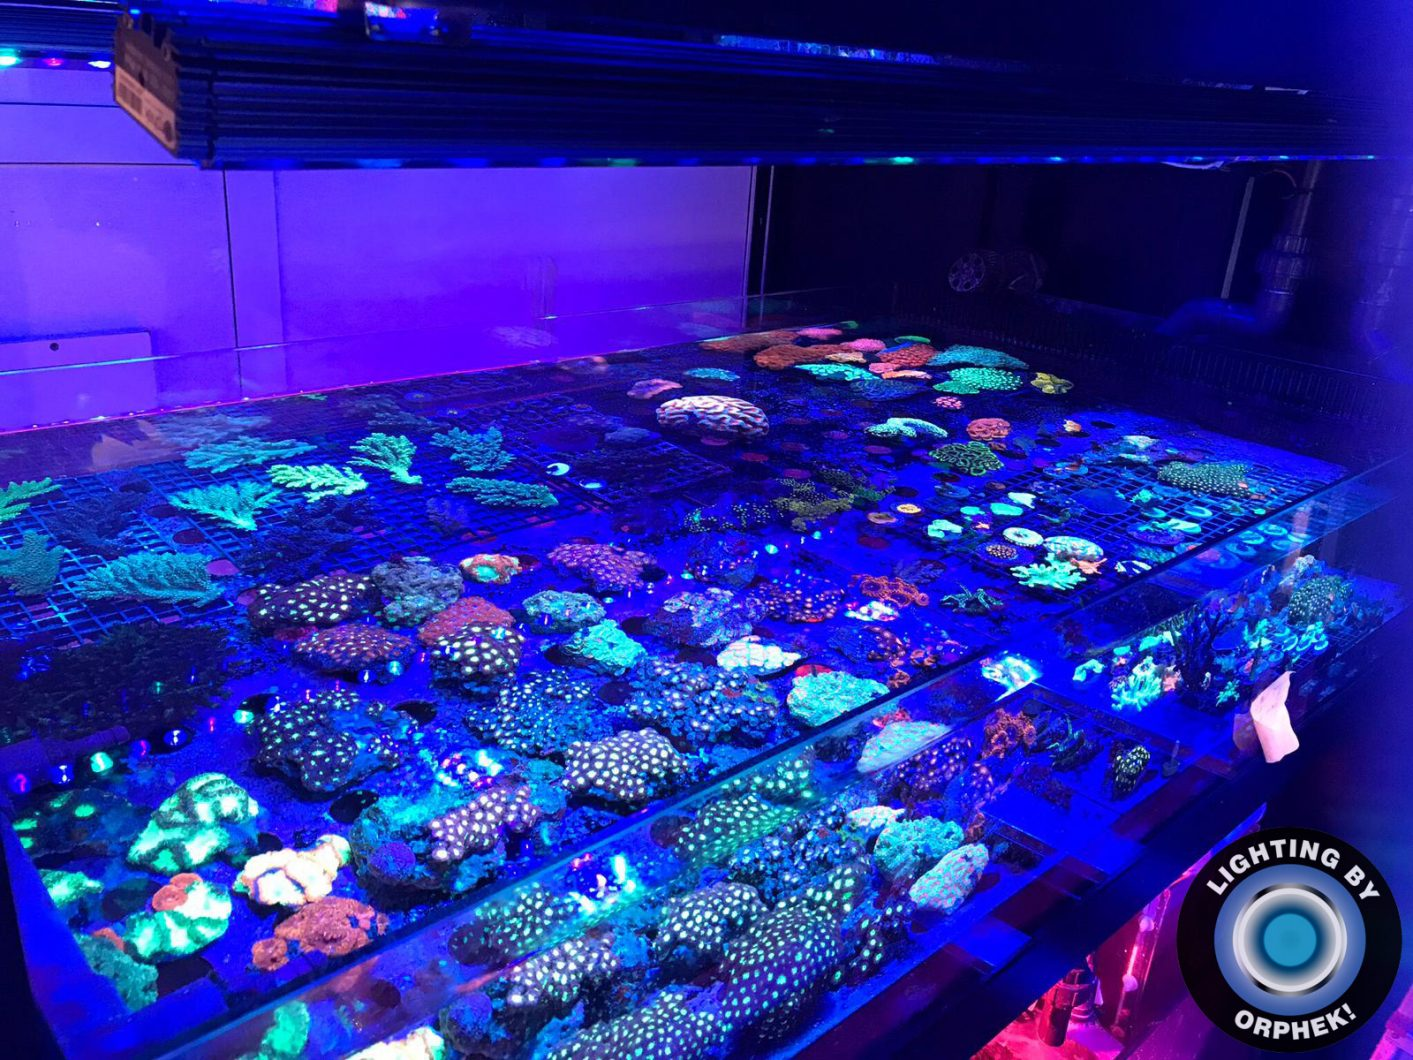 best reef corals aquarium lights 2020